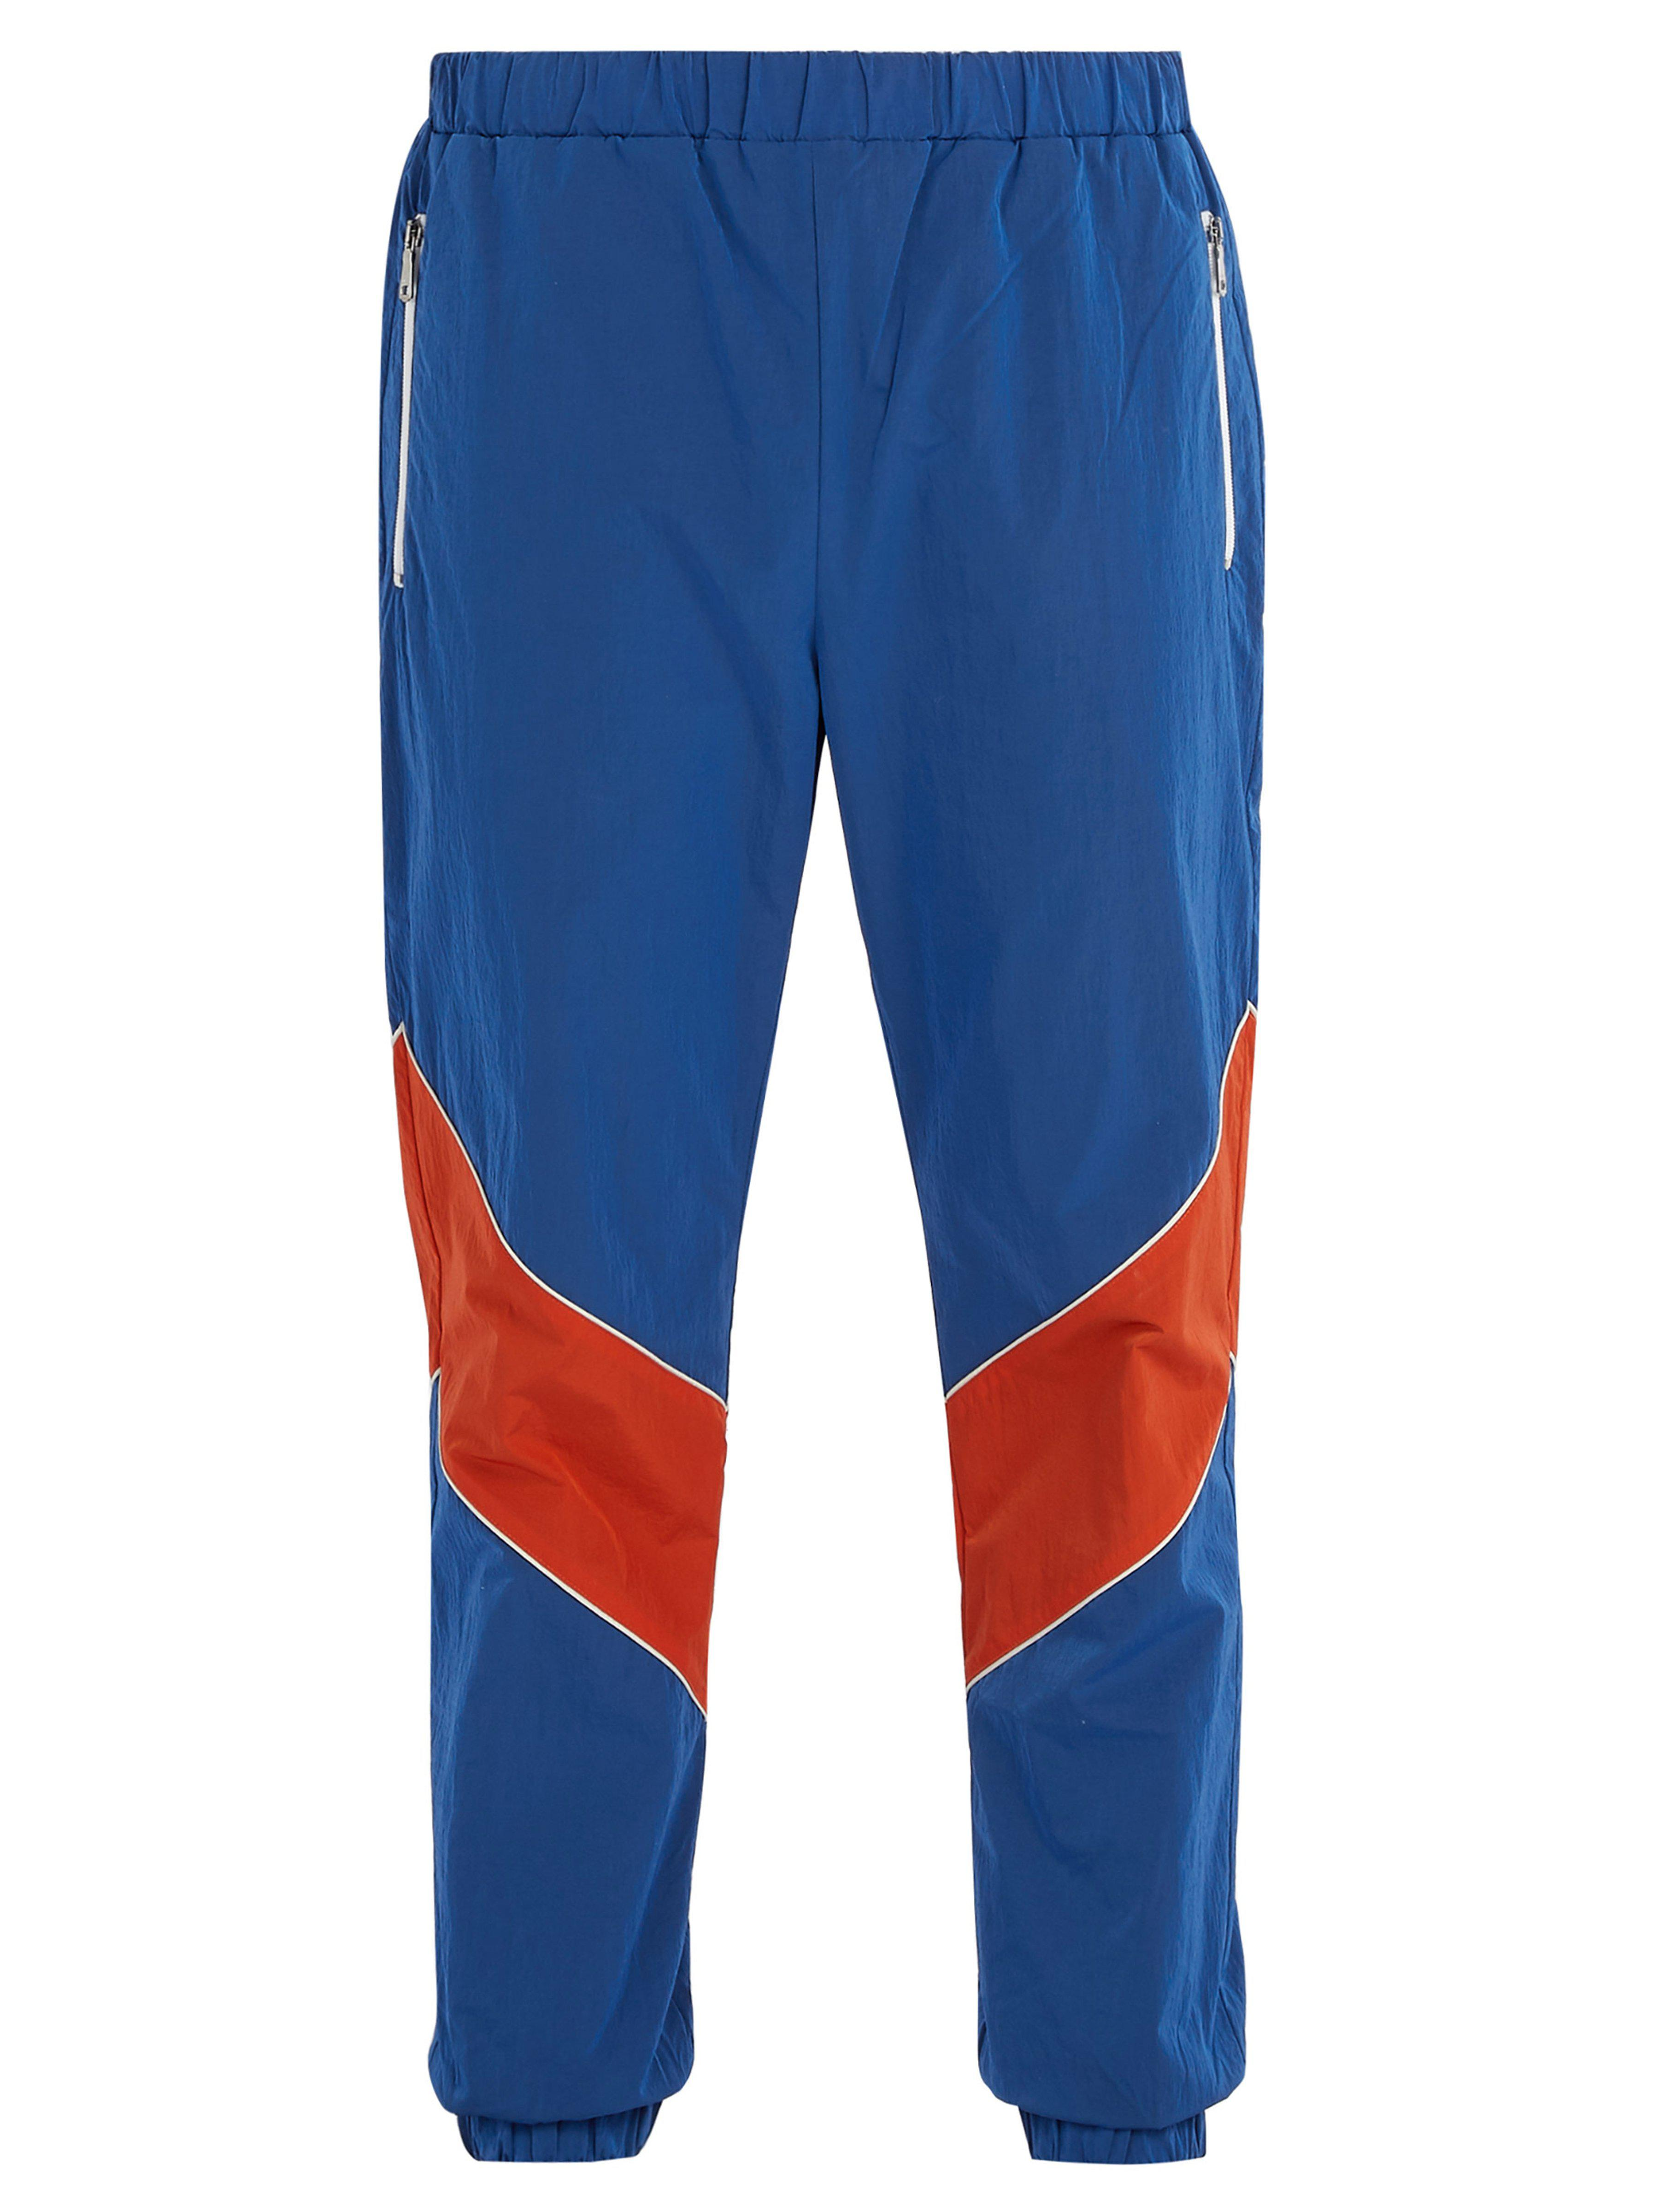 14c3d7aad Gucci Contrast Stripe Track Pants in Blue for Men - Lyst